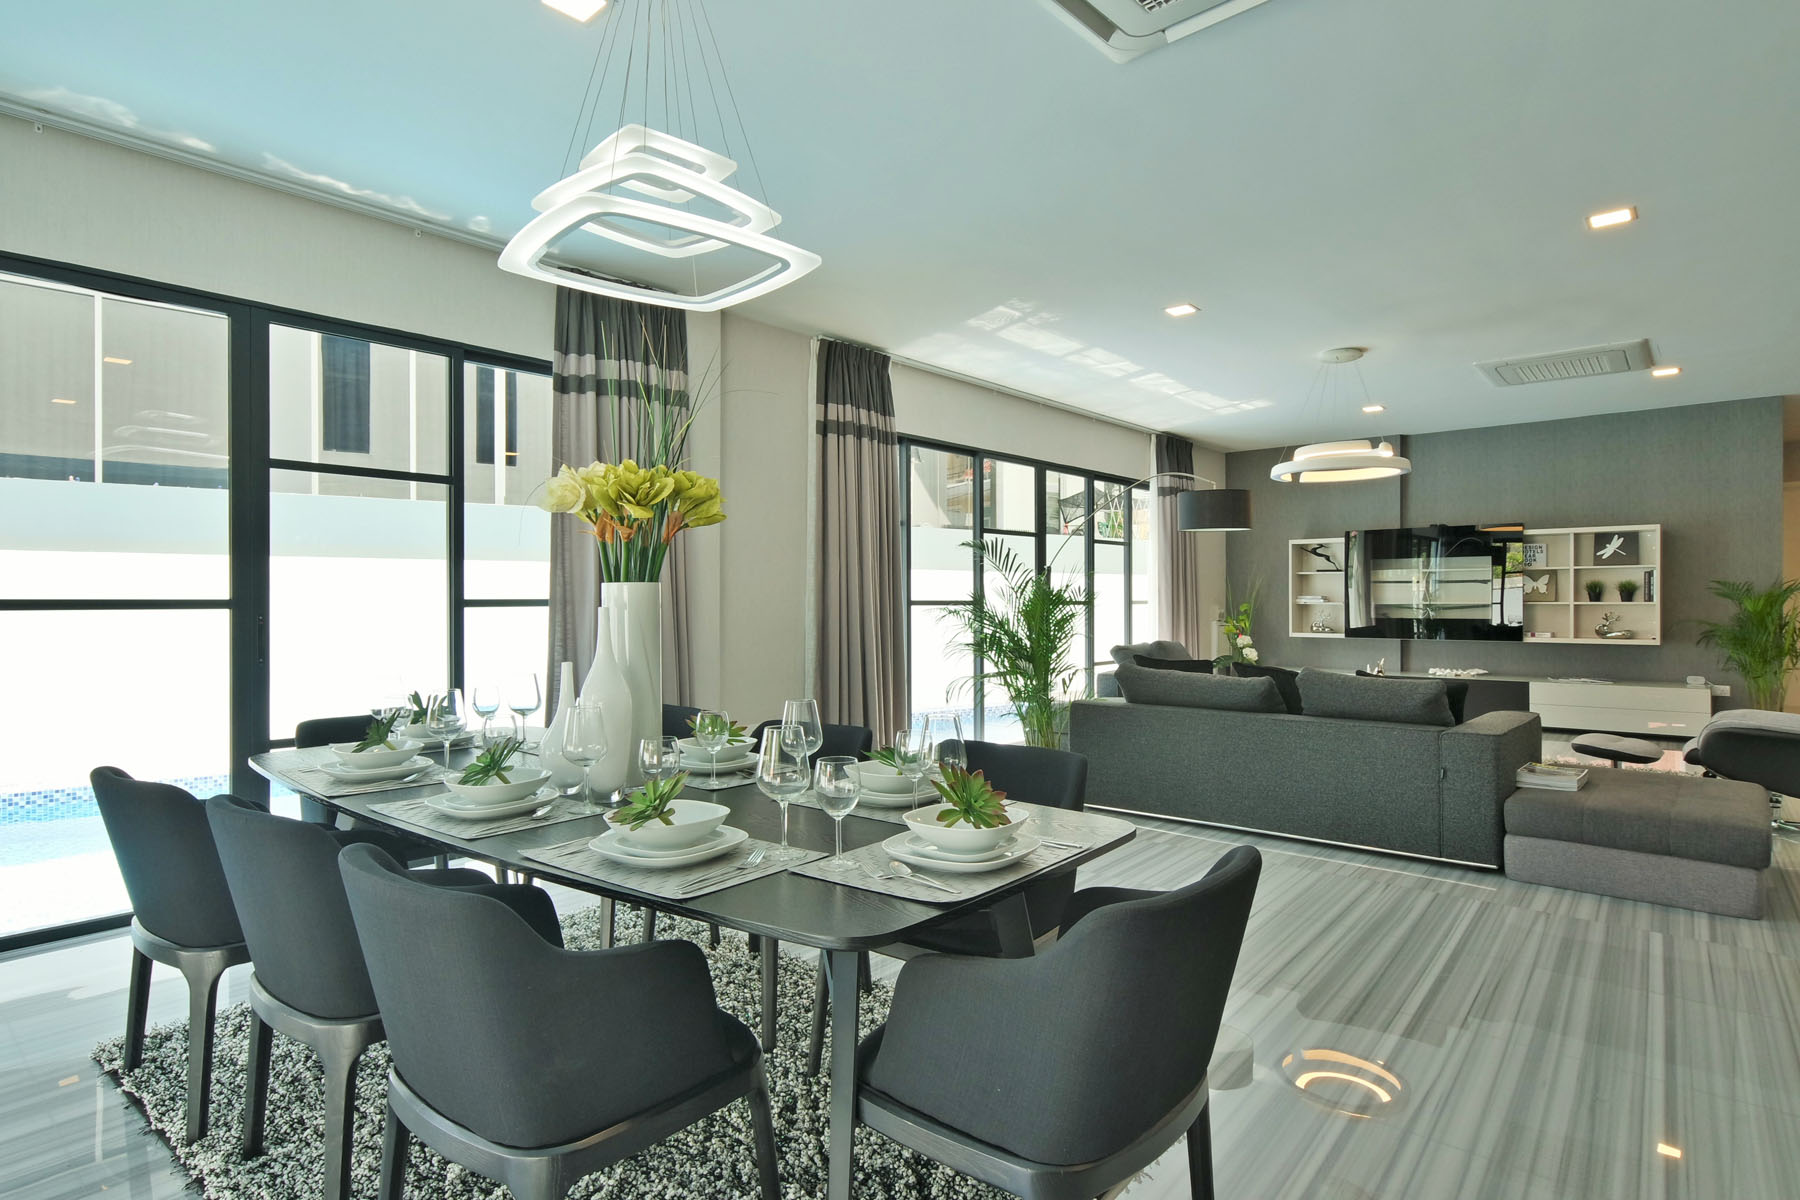 Dining area designs